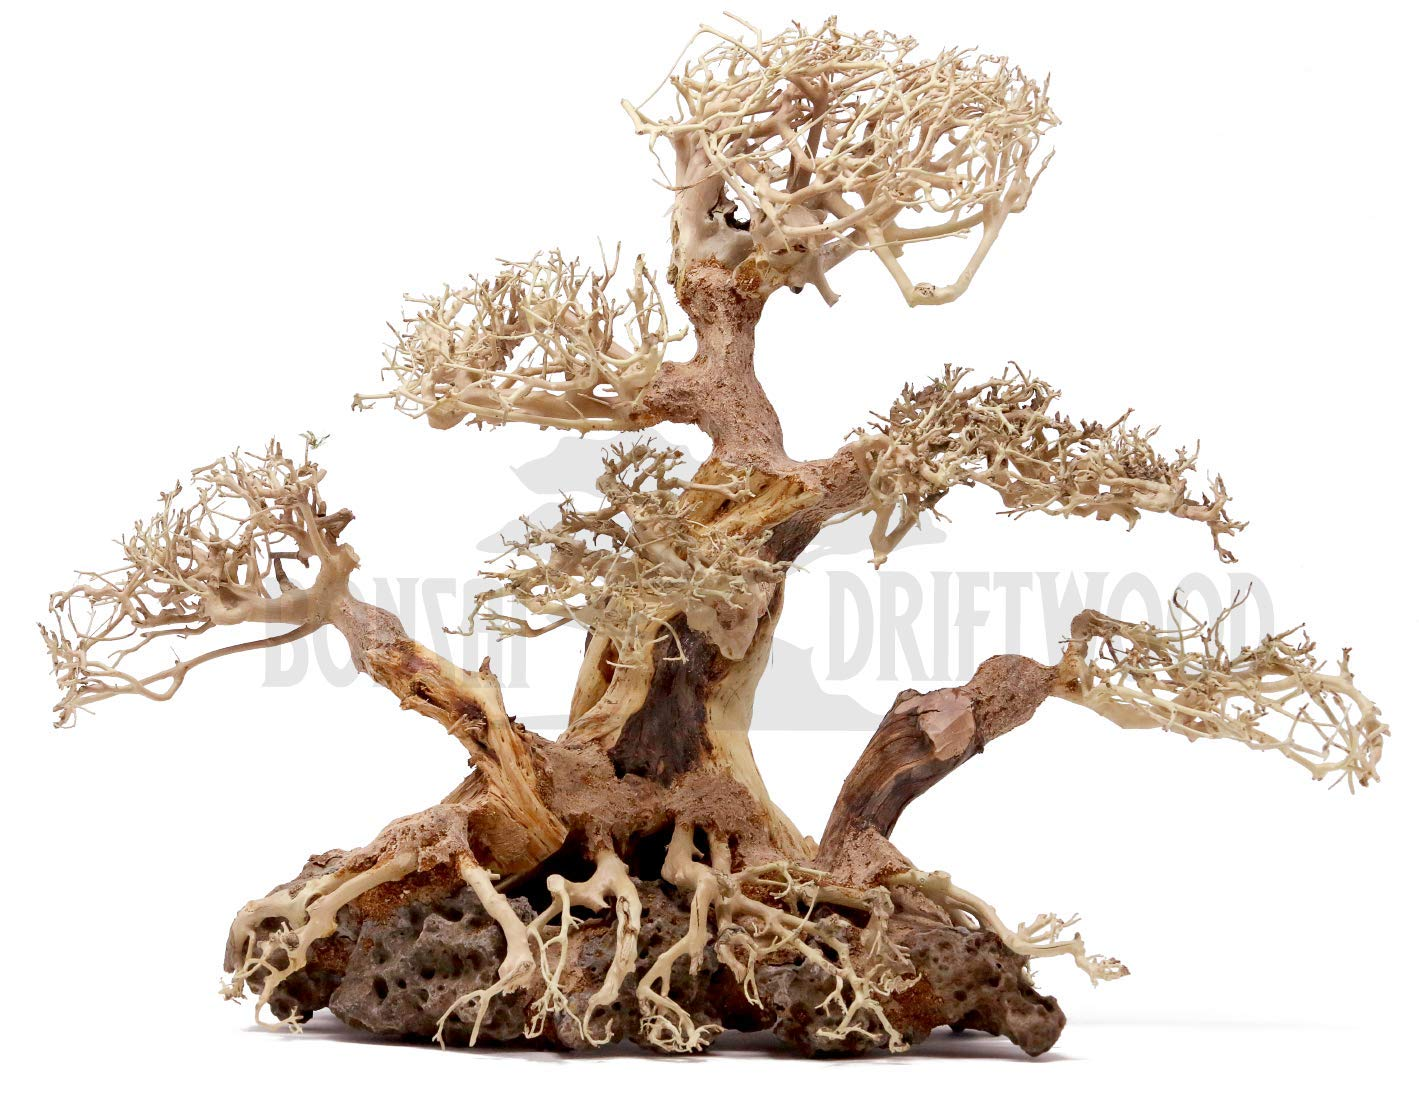 Bonsai Driftwood Aquarium Tree BLS (12 Inch Height x 9 Inch Width x 16 Inch Length) Natural, Handcrafted Fish Tank Decoration | Helps Balance Water pH Levels, Stabilizes Environments | Easy to Install by Bonsai Driftwood